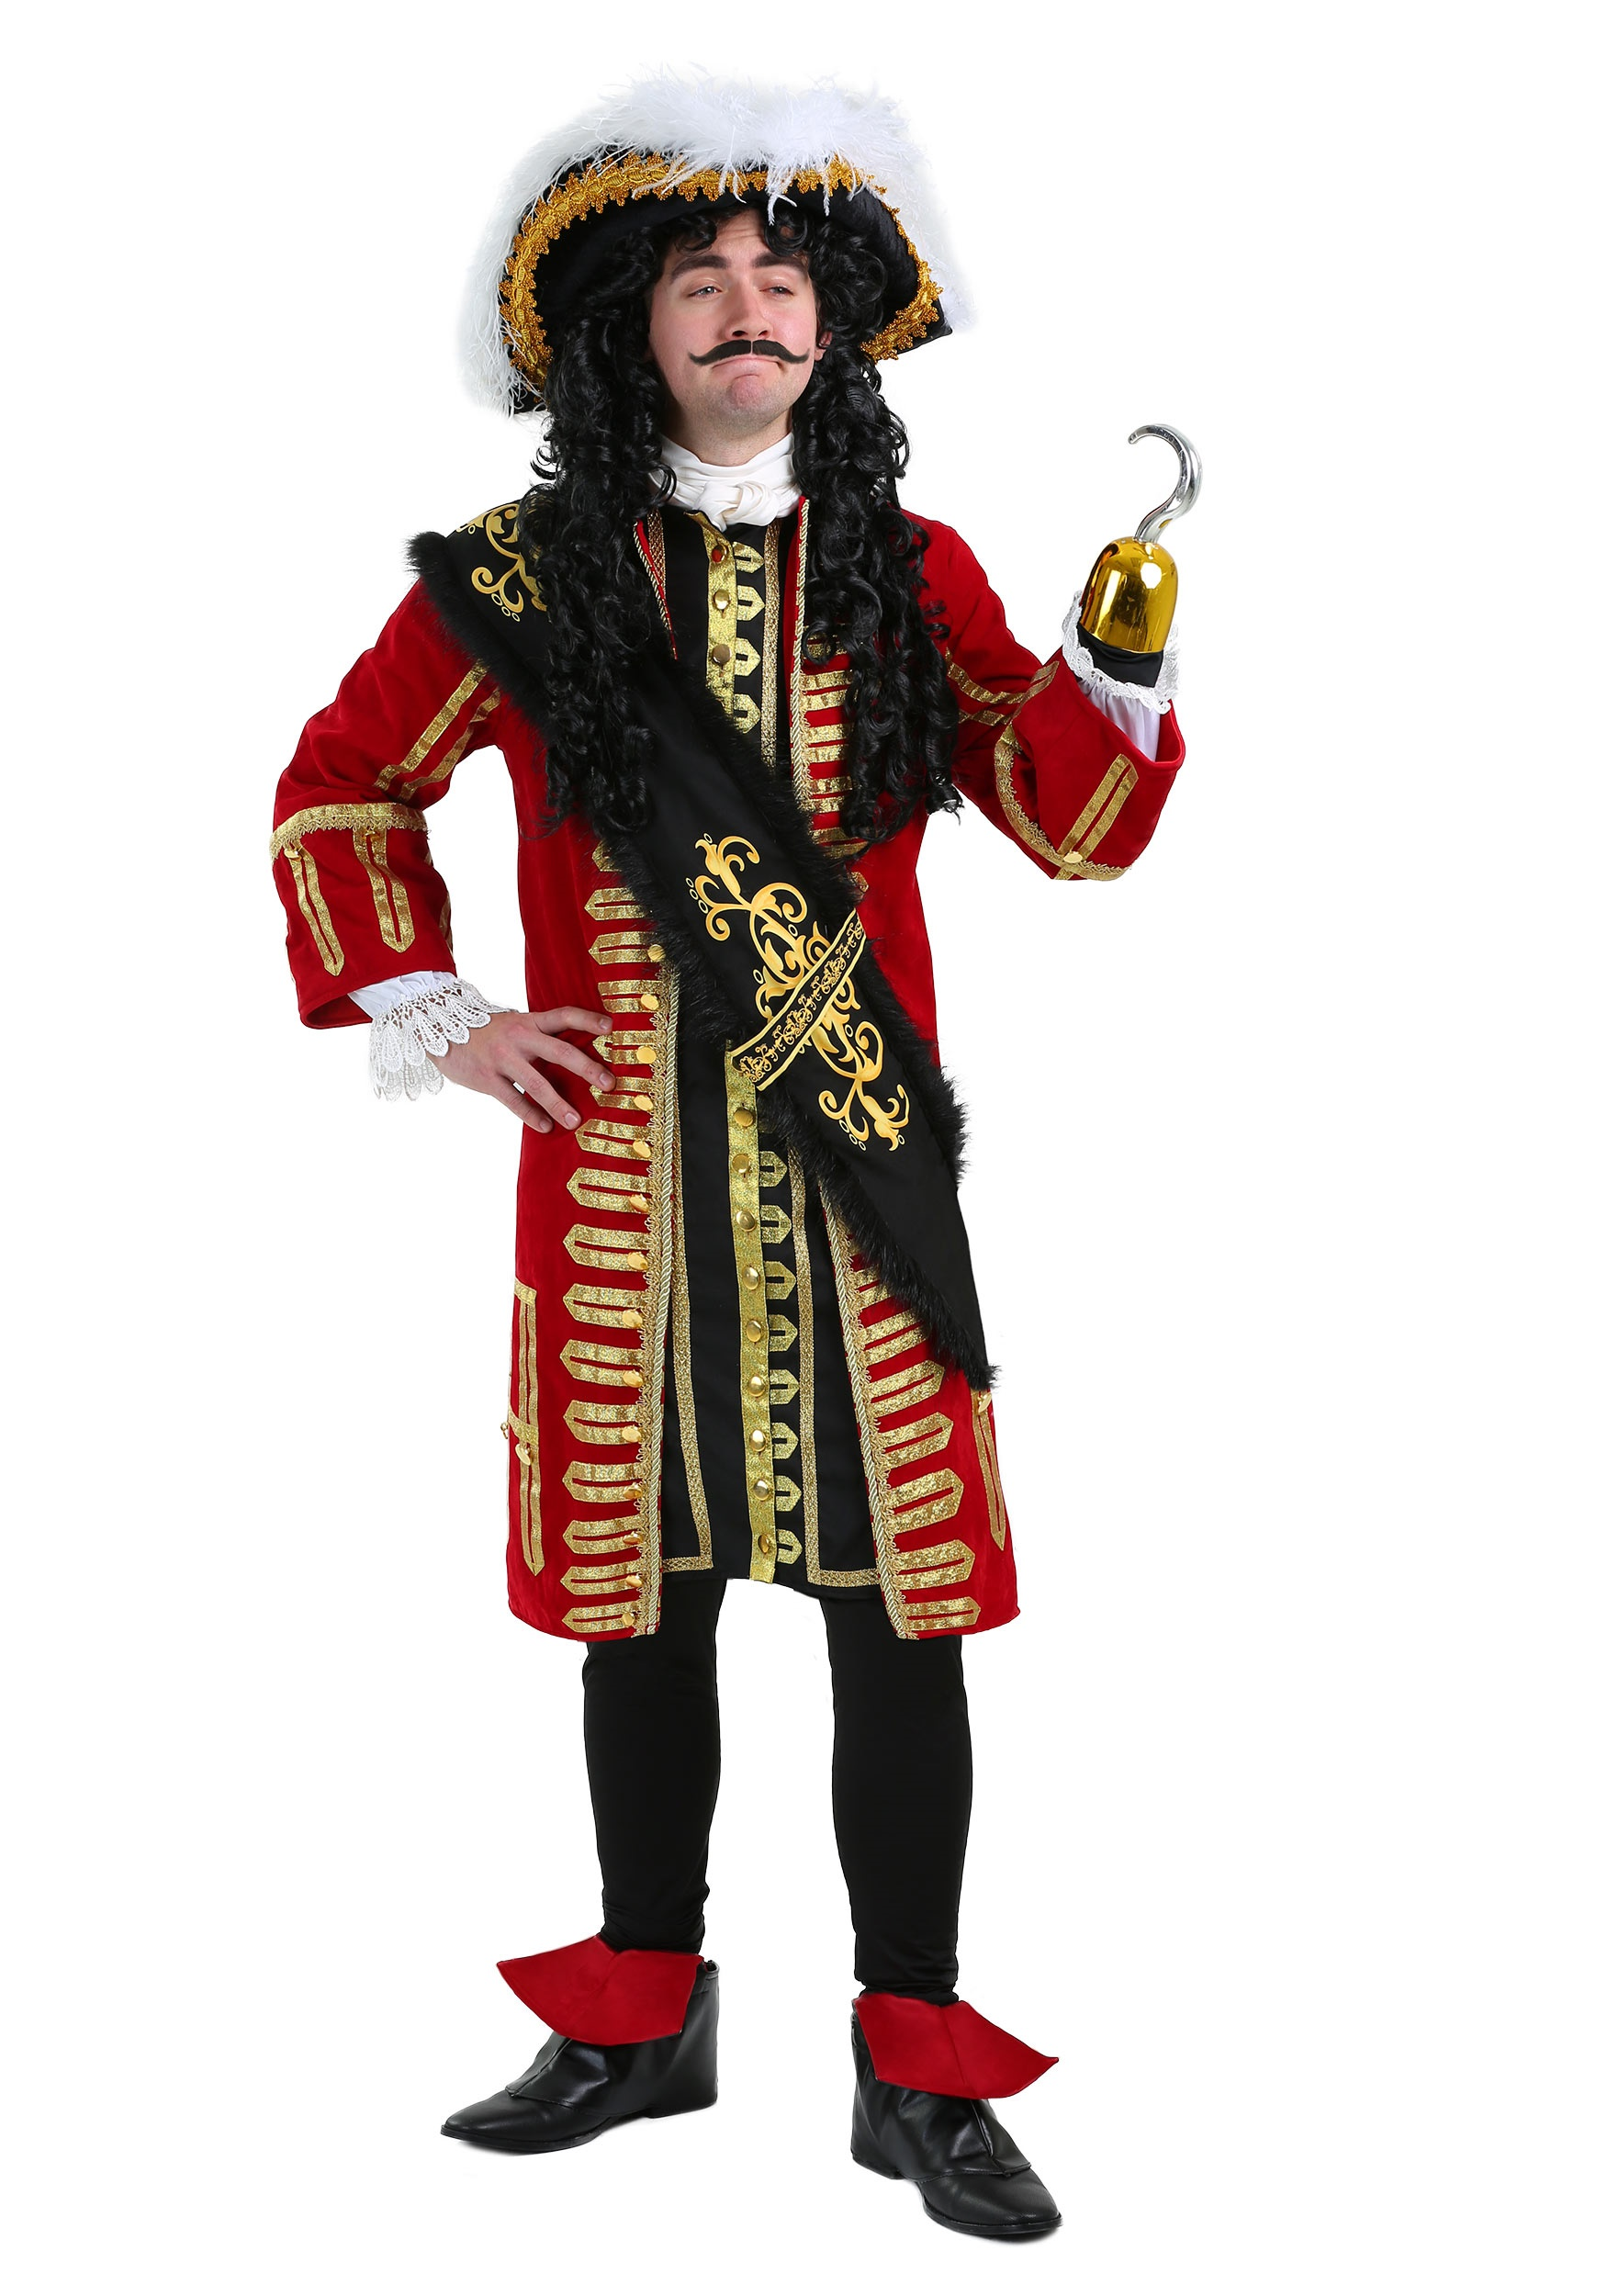 Elite Captain Hook Pirate Costume 8705e216338d